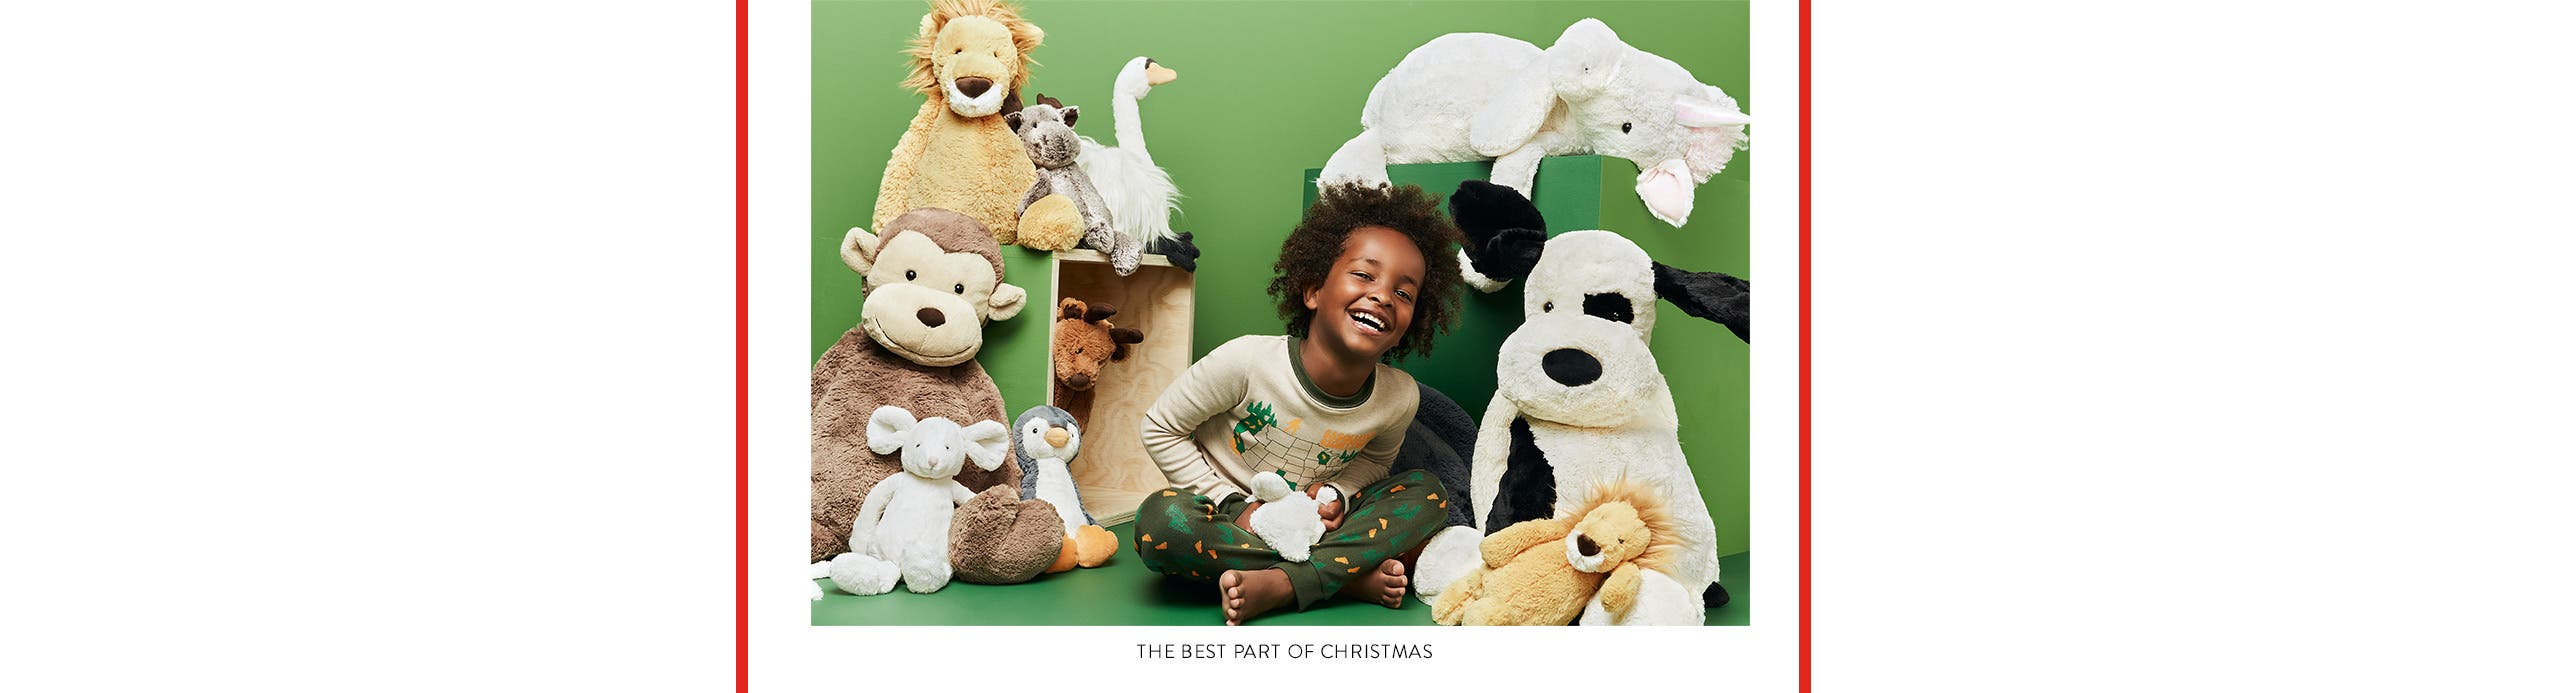 Toys: the best part of Christmas.